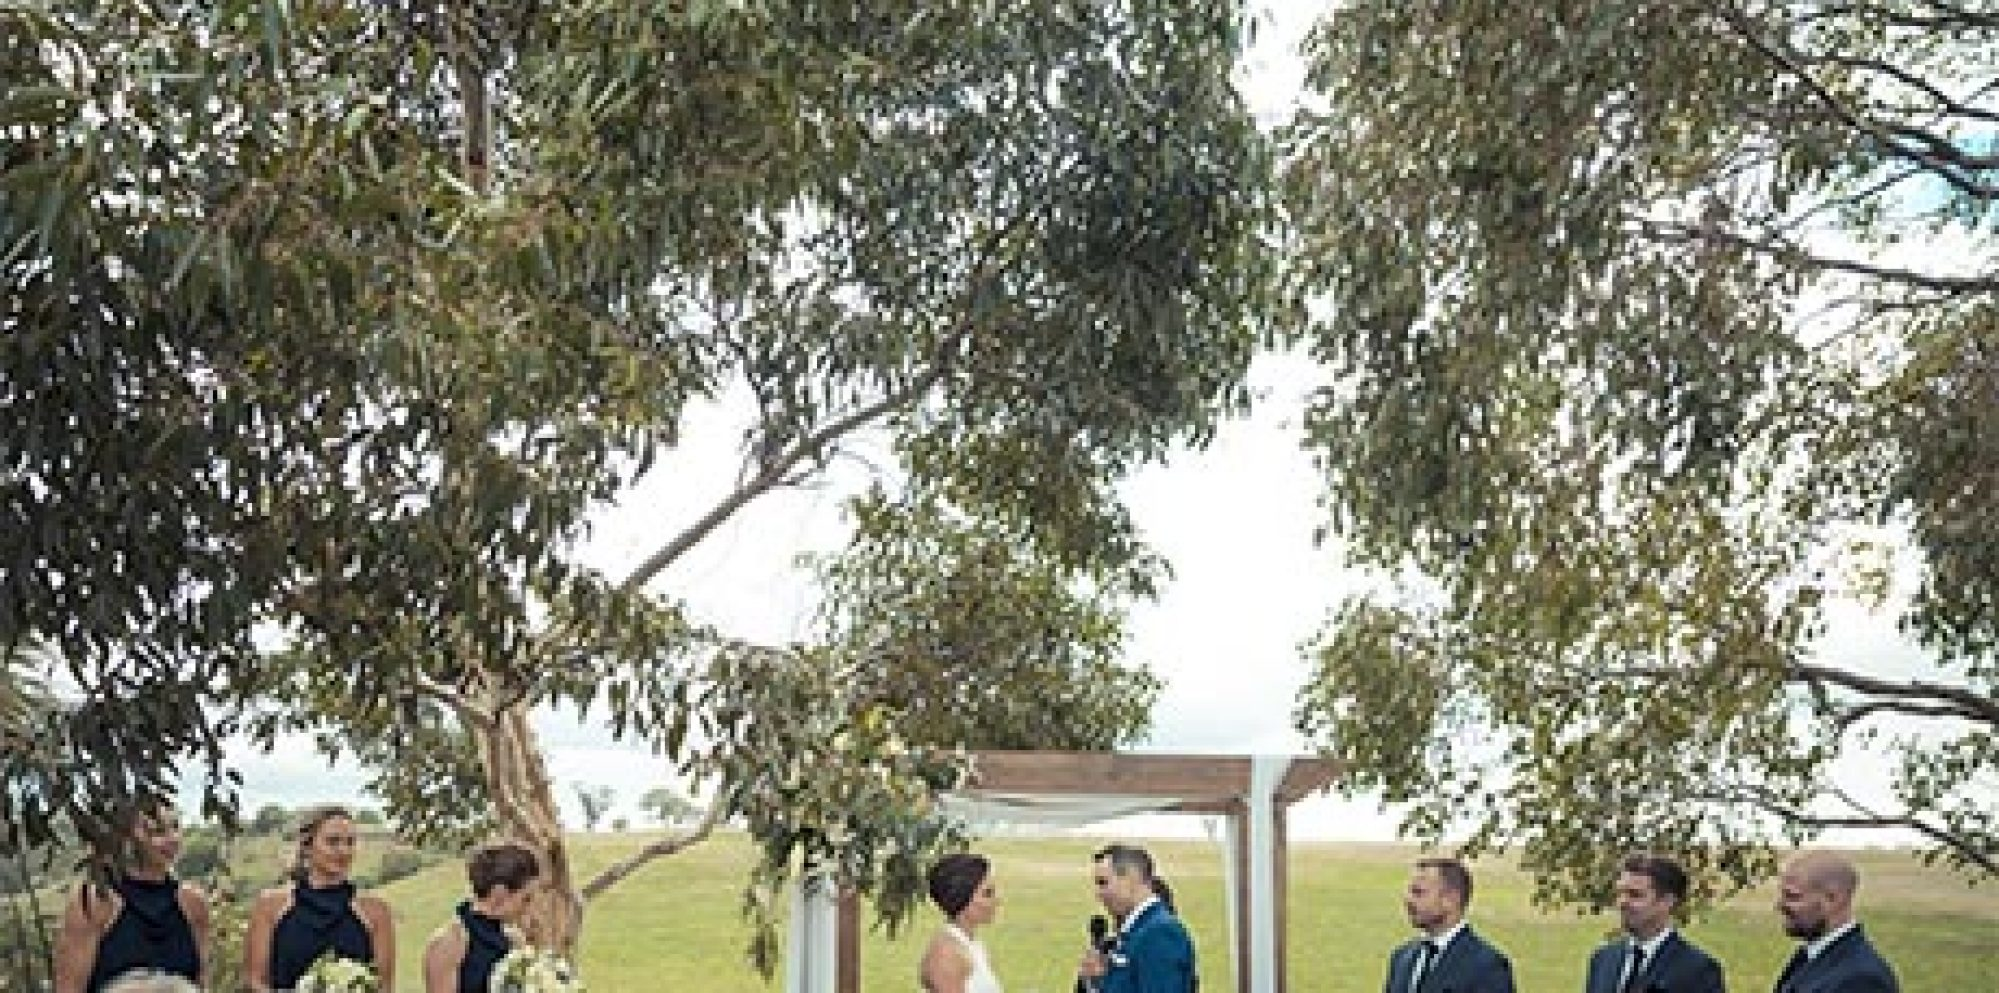 Matt & krystal | warrawong woolshed wedding video